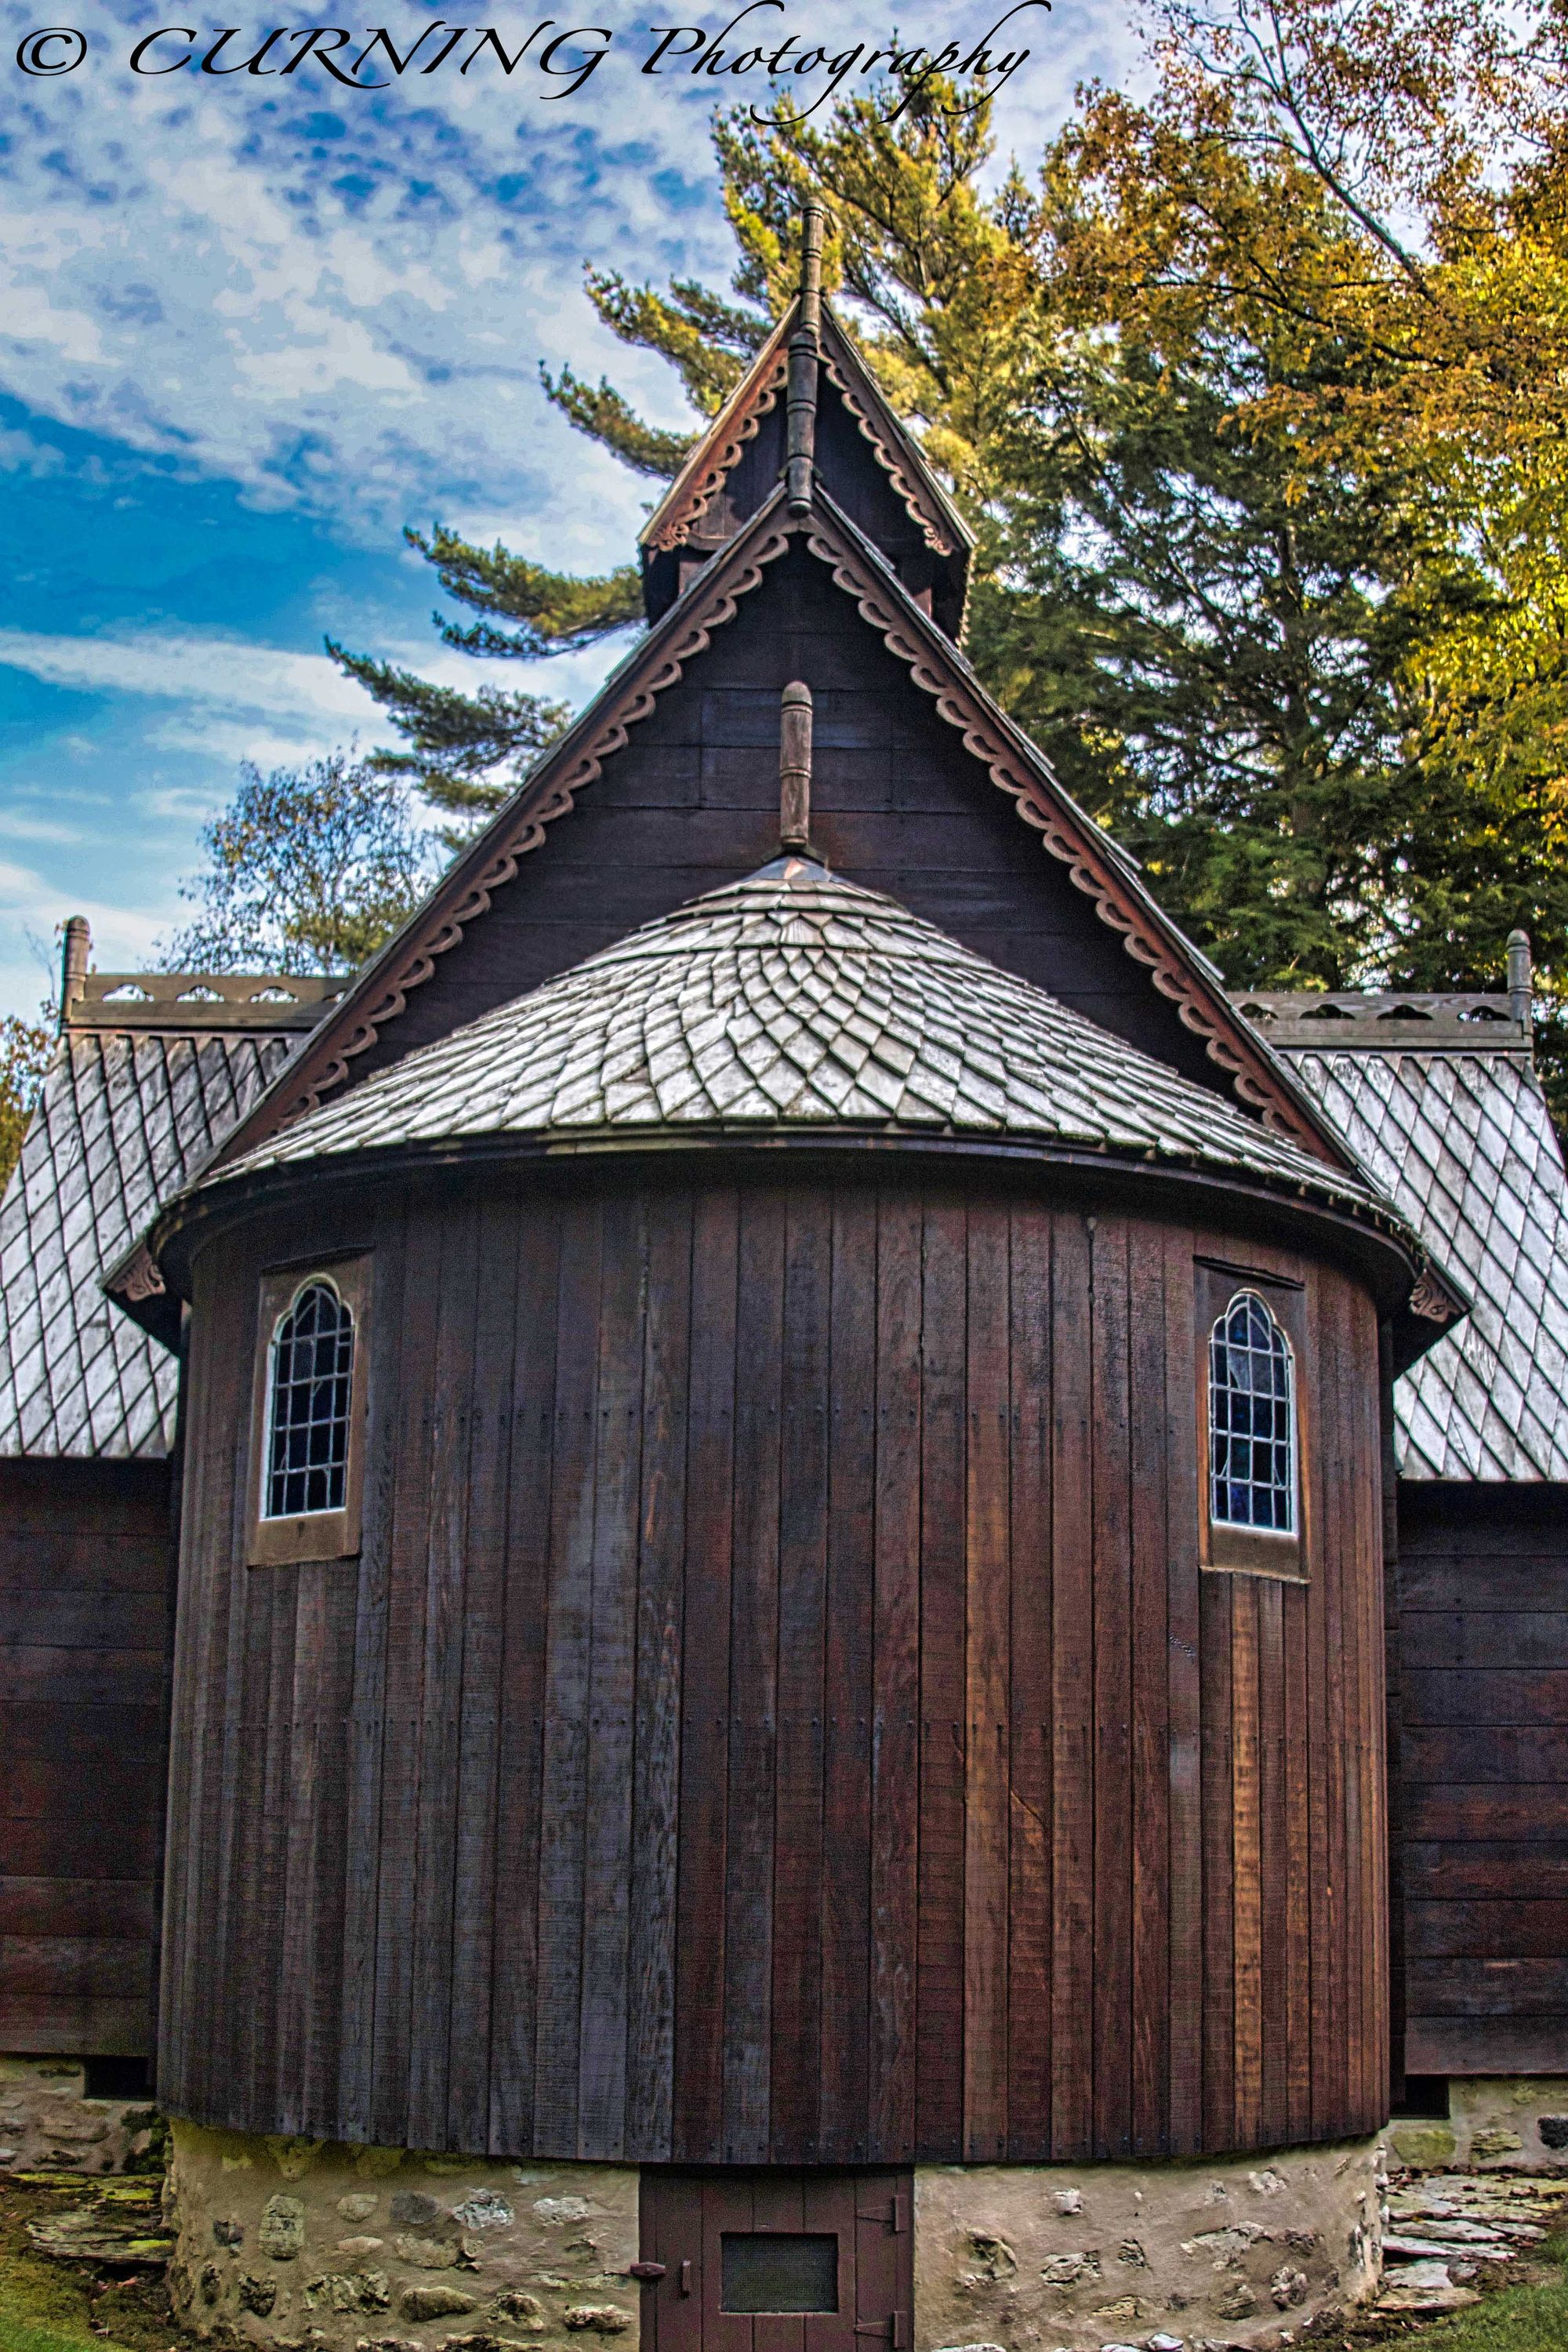 The Boynton Chapel In Door County Wisconsin Is A Small Wooden Chapel Built In A Late 12th Century Norw In 2020 Nature Photography Nature Photographs Discover Wisconsin